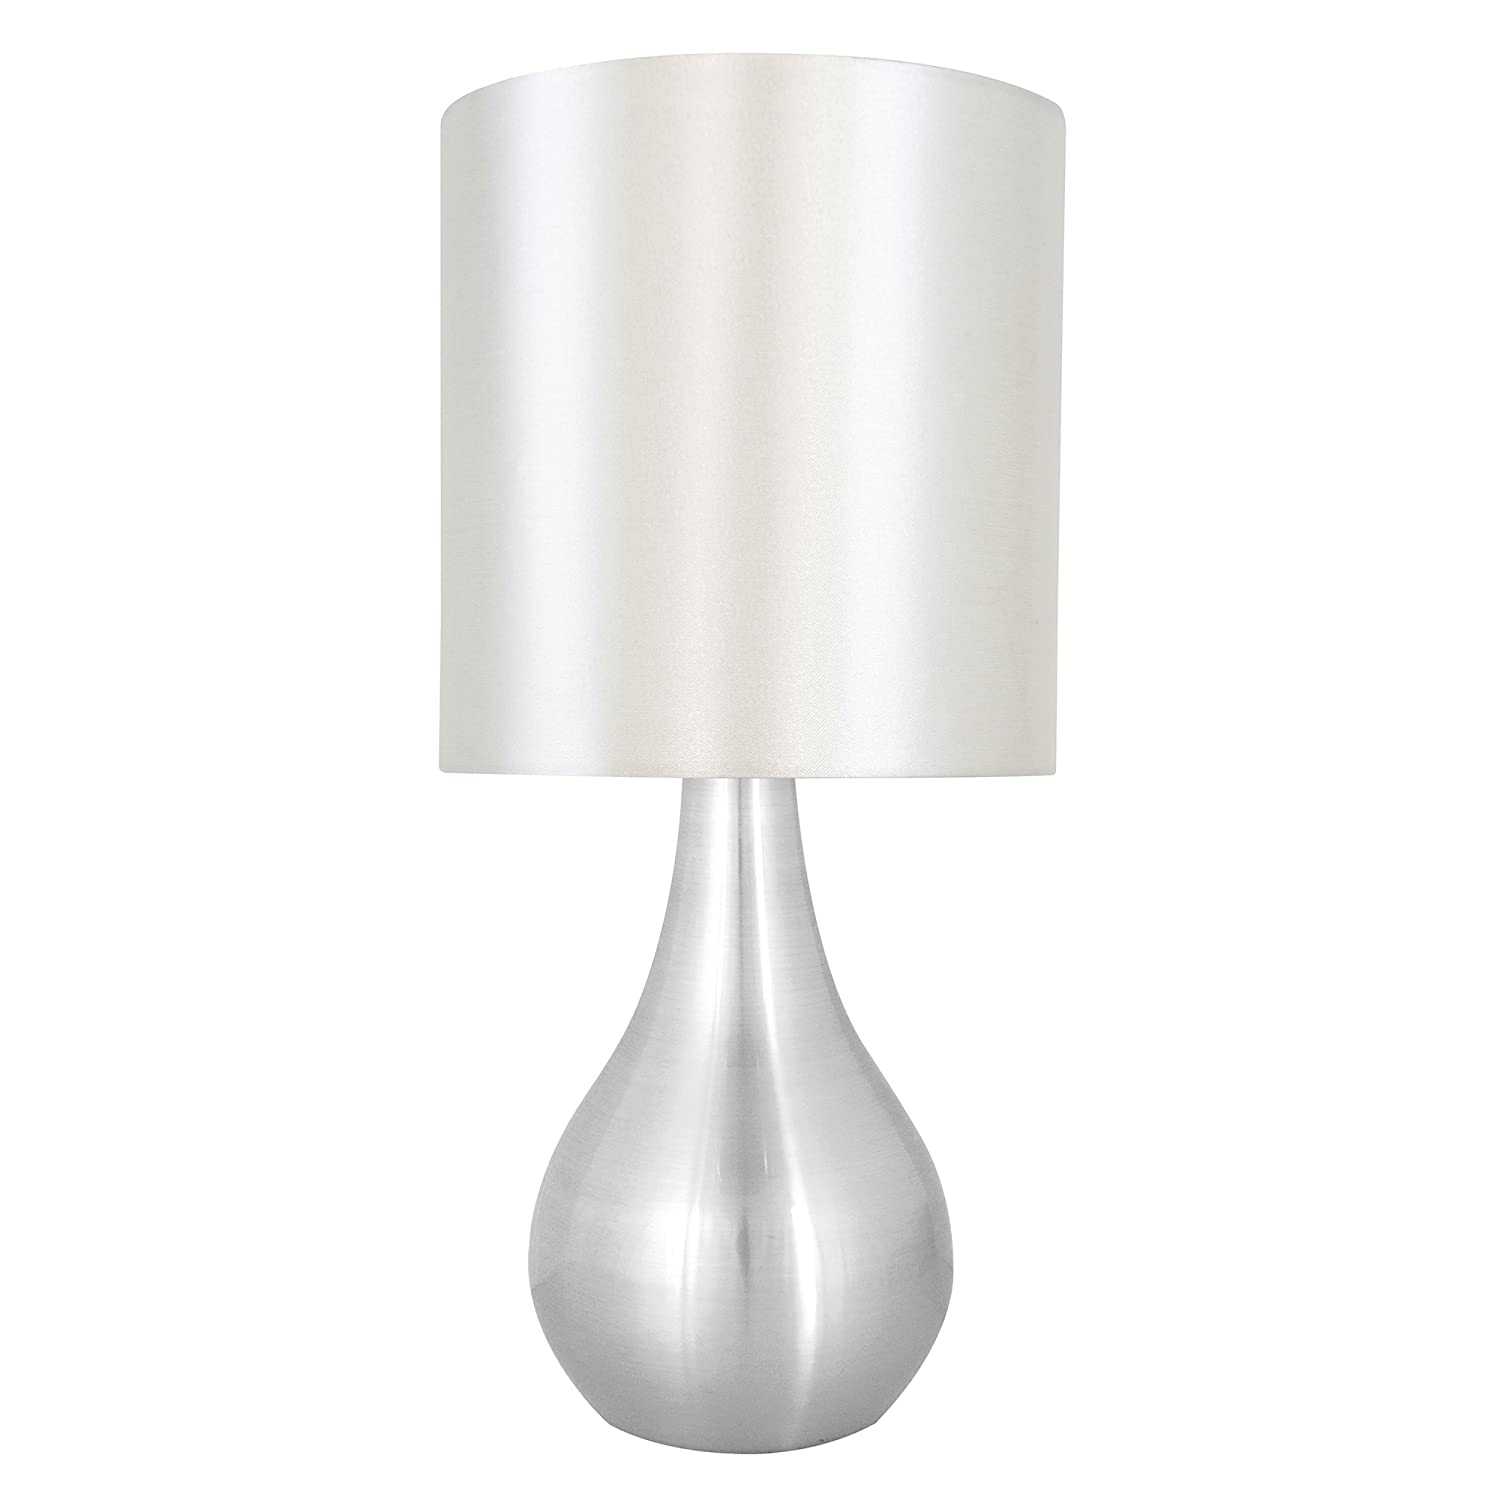 Lloytron touch table lamp amazon lighting aloadofball Images